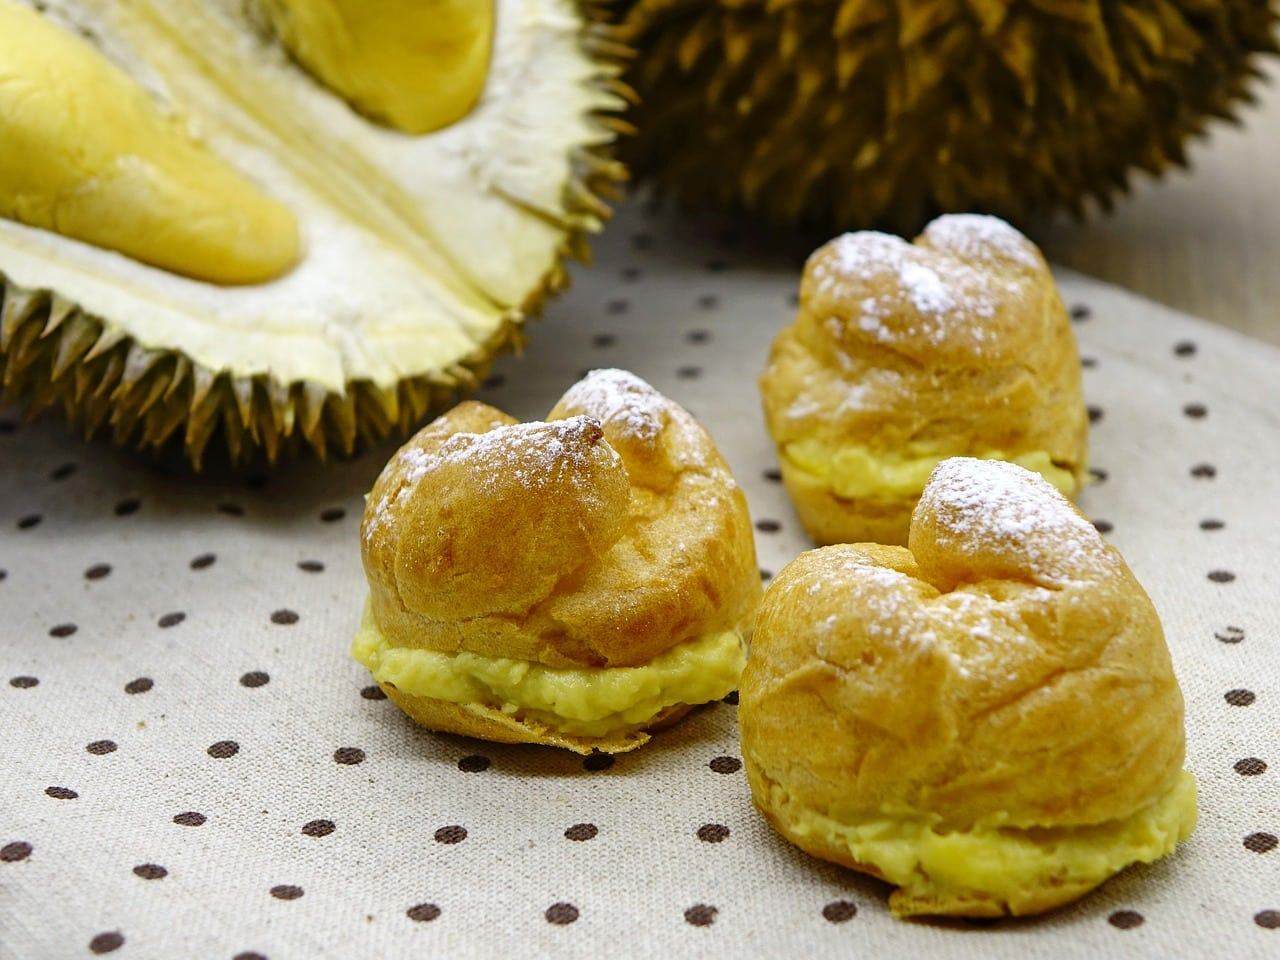 Durian and durian puff